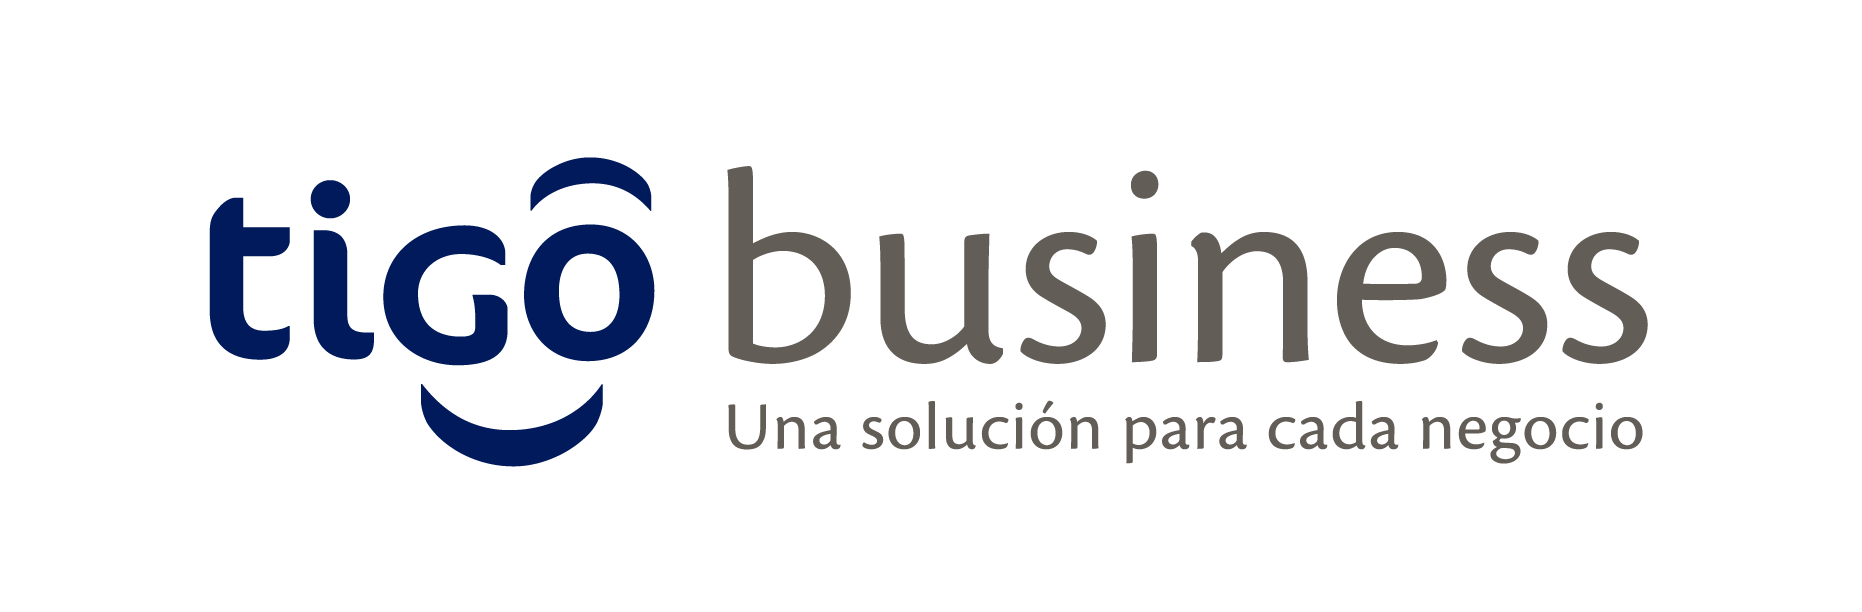 Logo tigo business pleca blanco